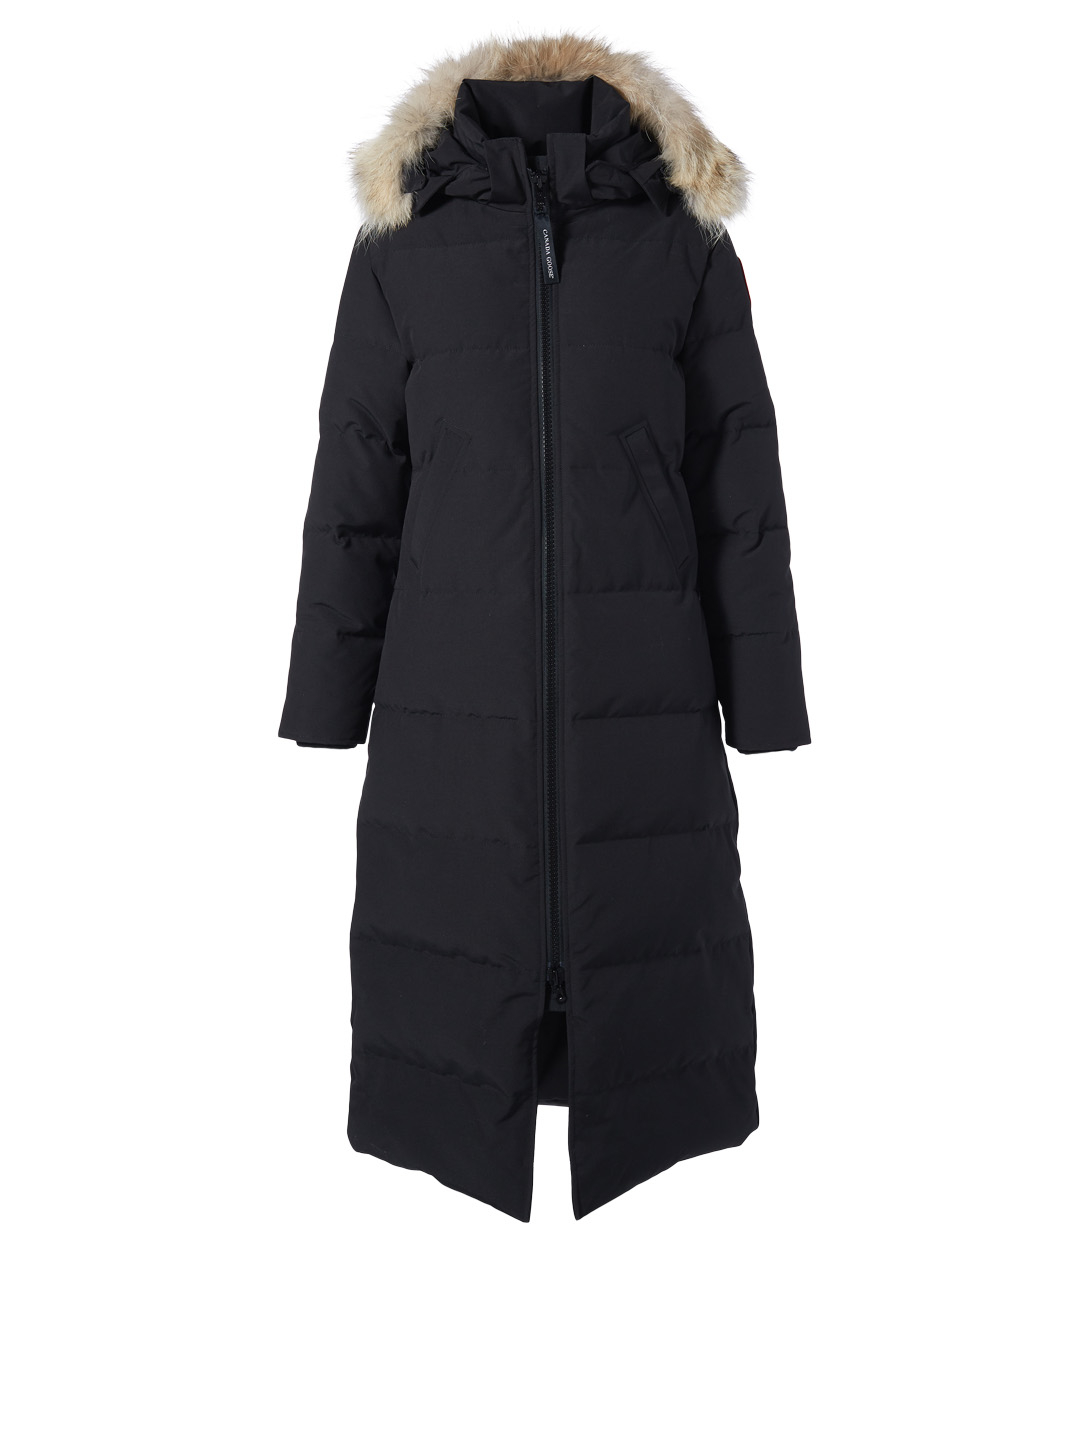 CANADA GOOSE Mystique Down Parka With Fur Hood - Fusion Fit Women's Black